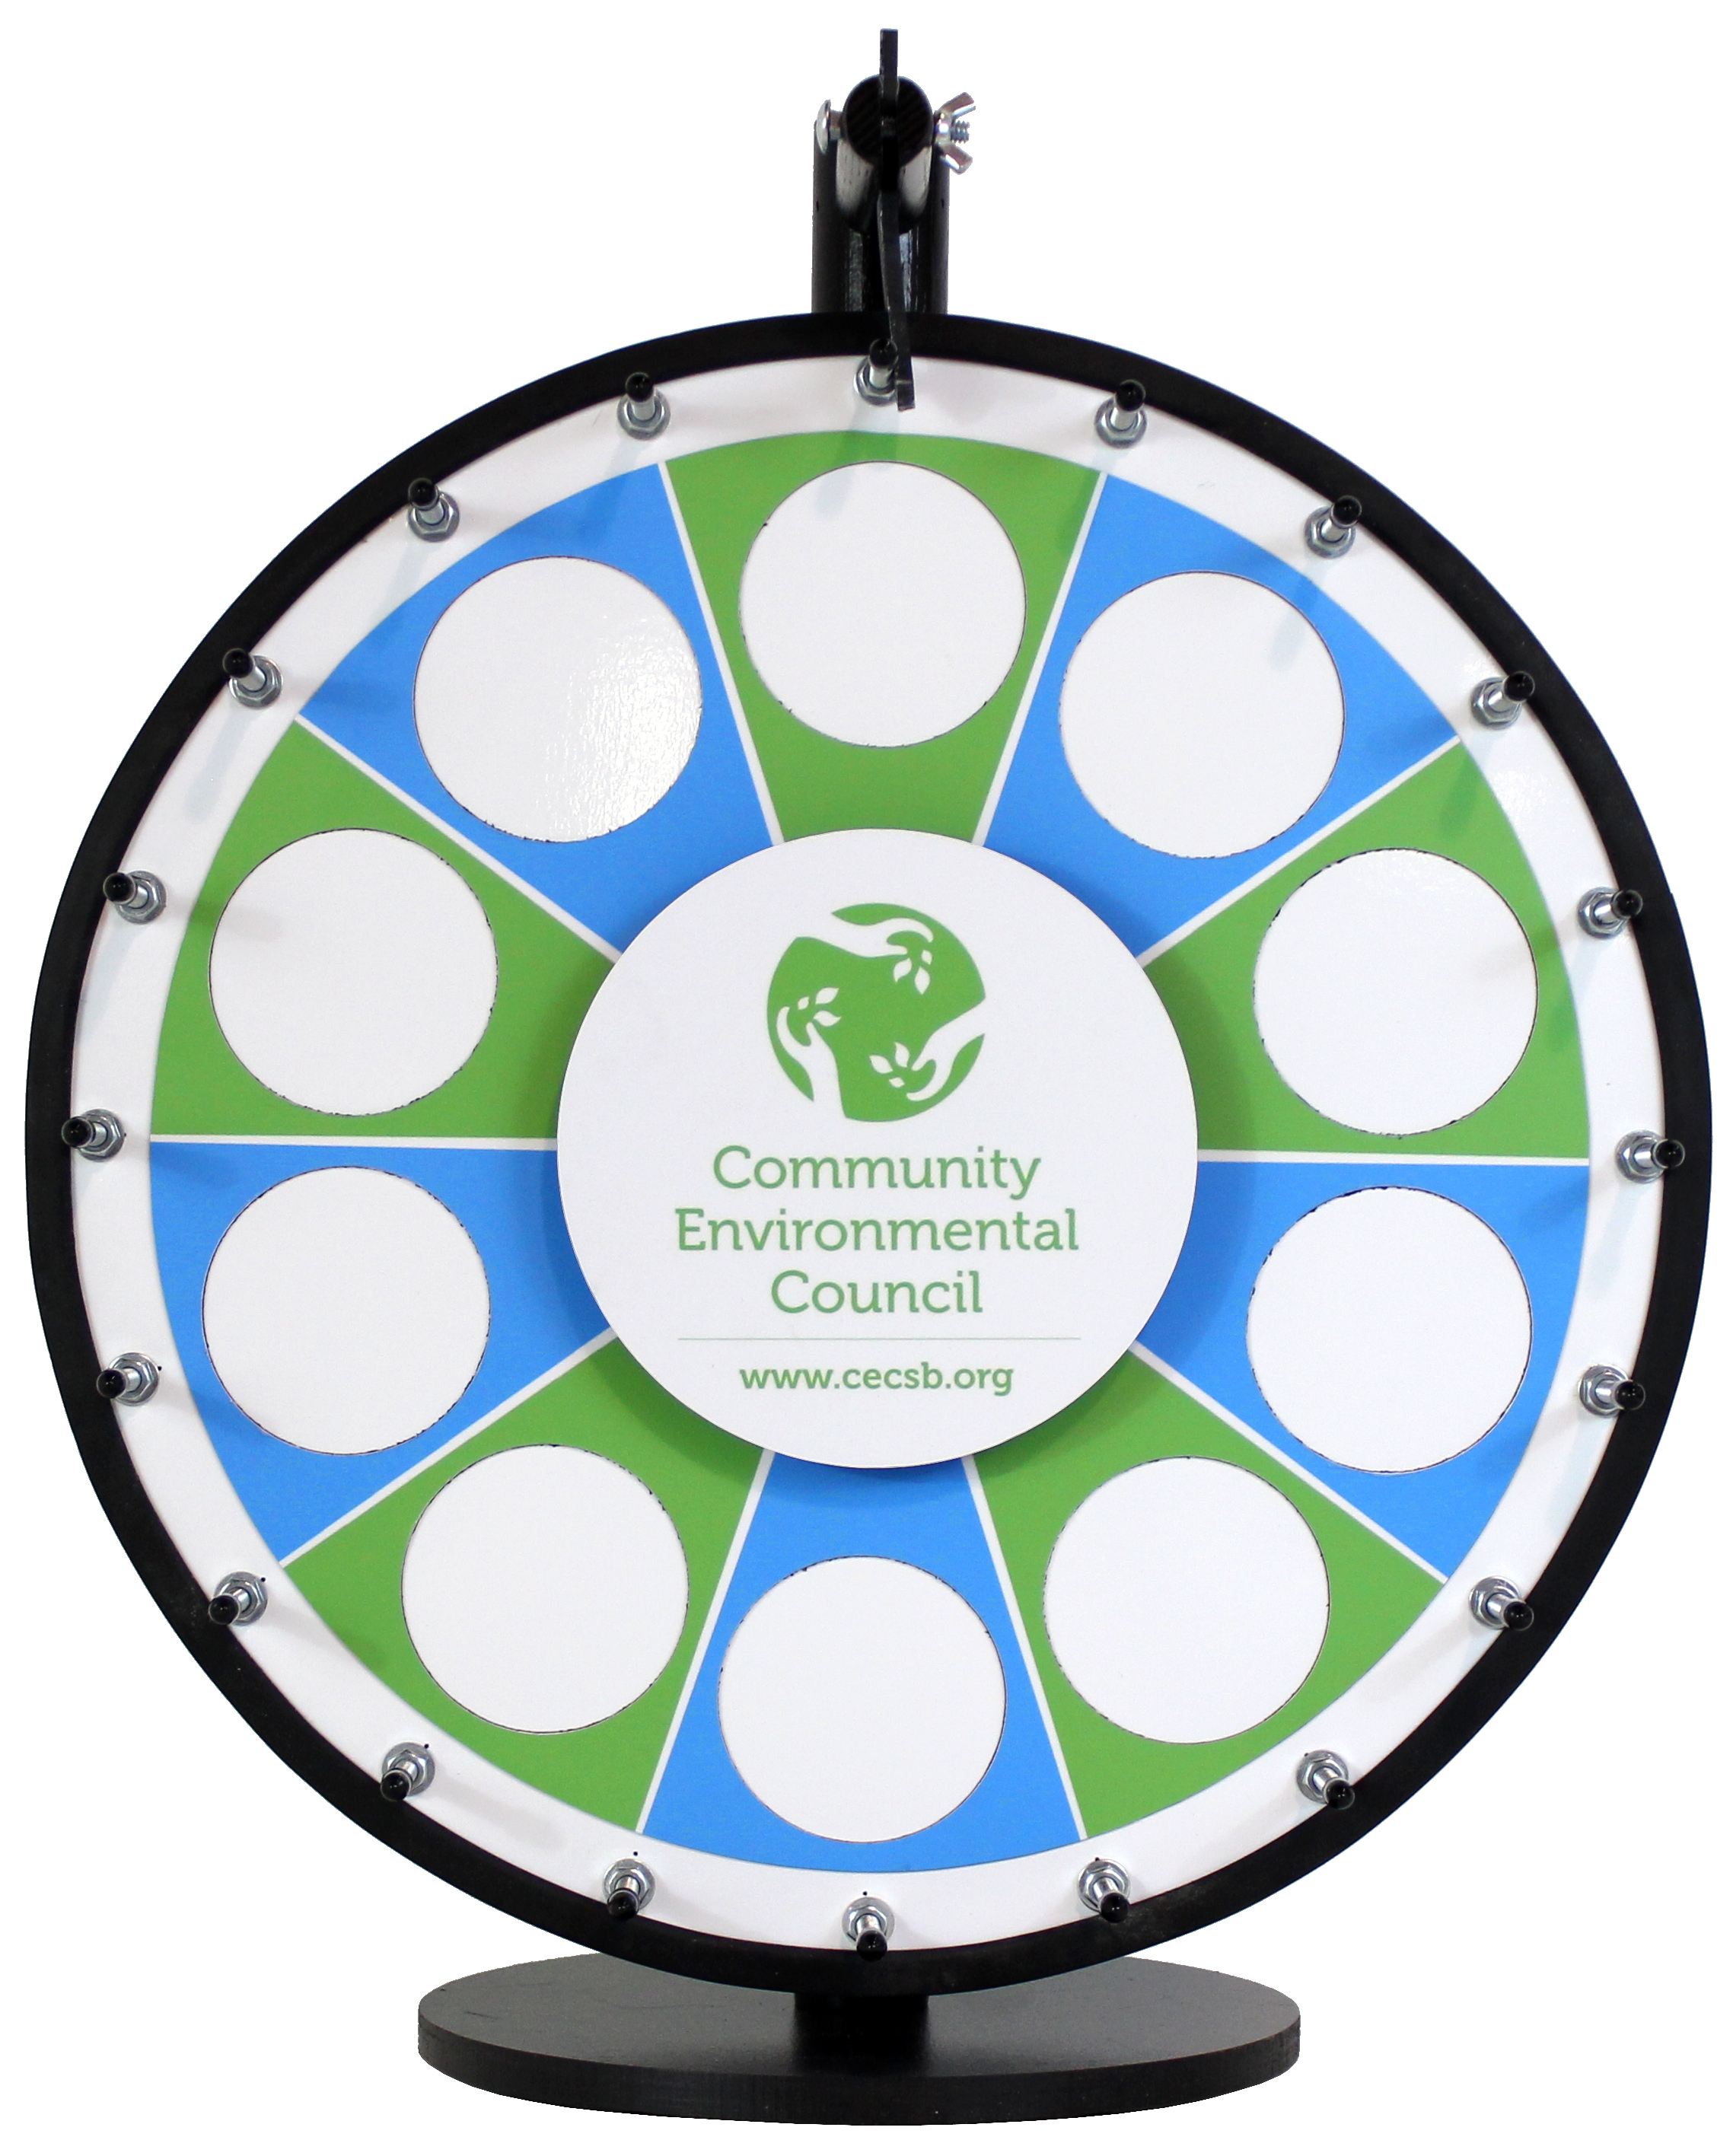 18-inch-community-environmental-council-prize-wheel.jpg